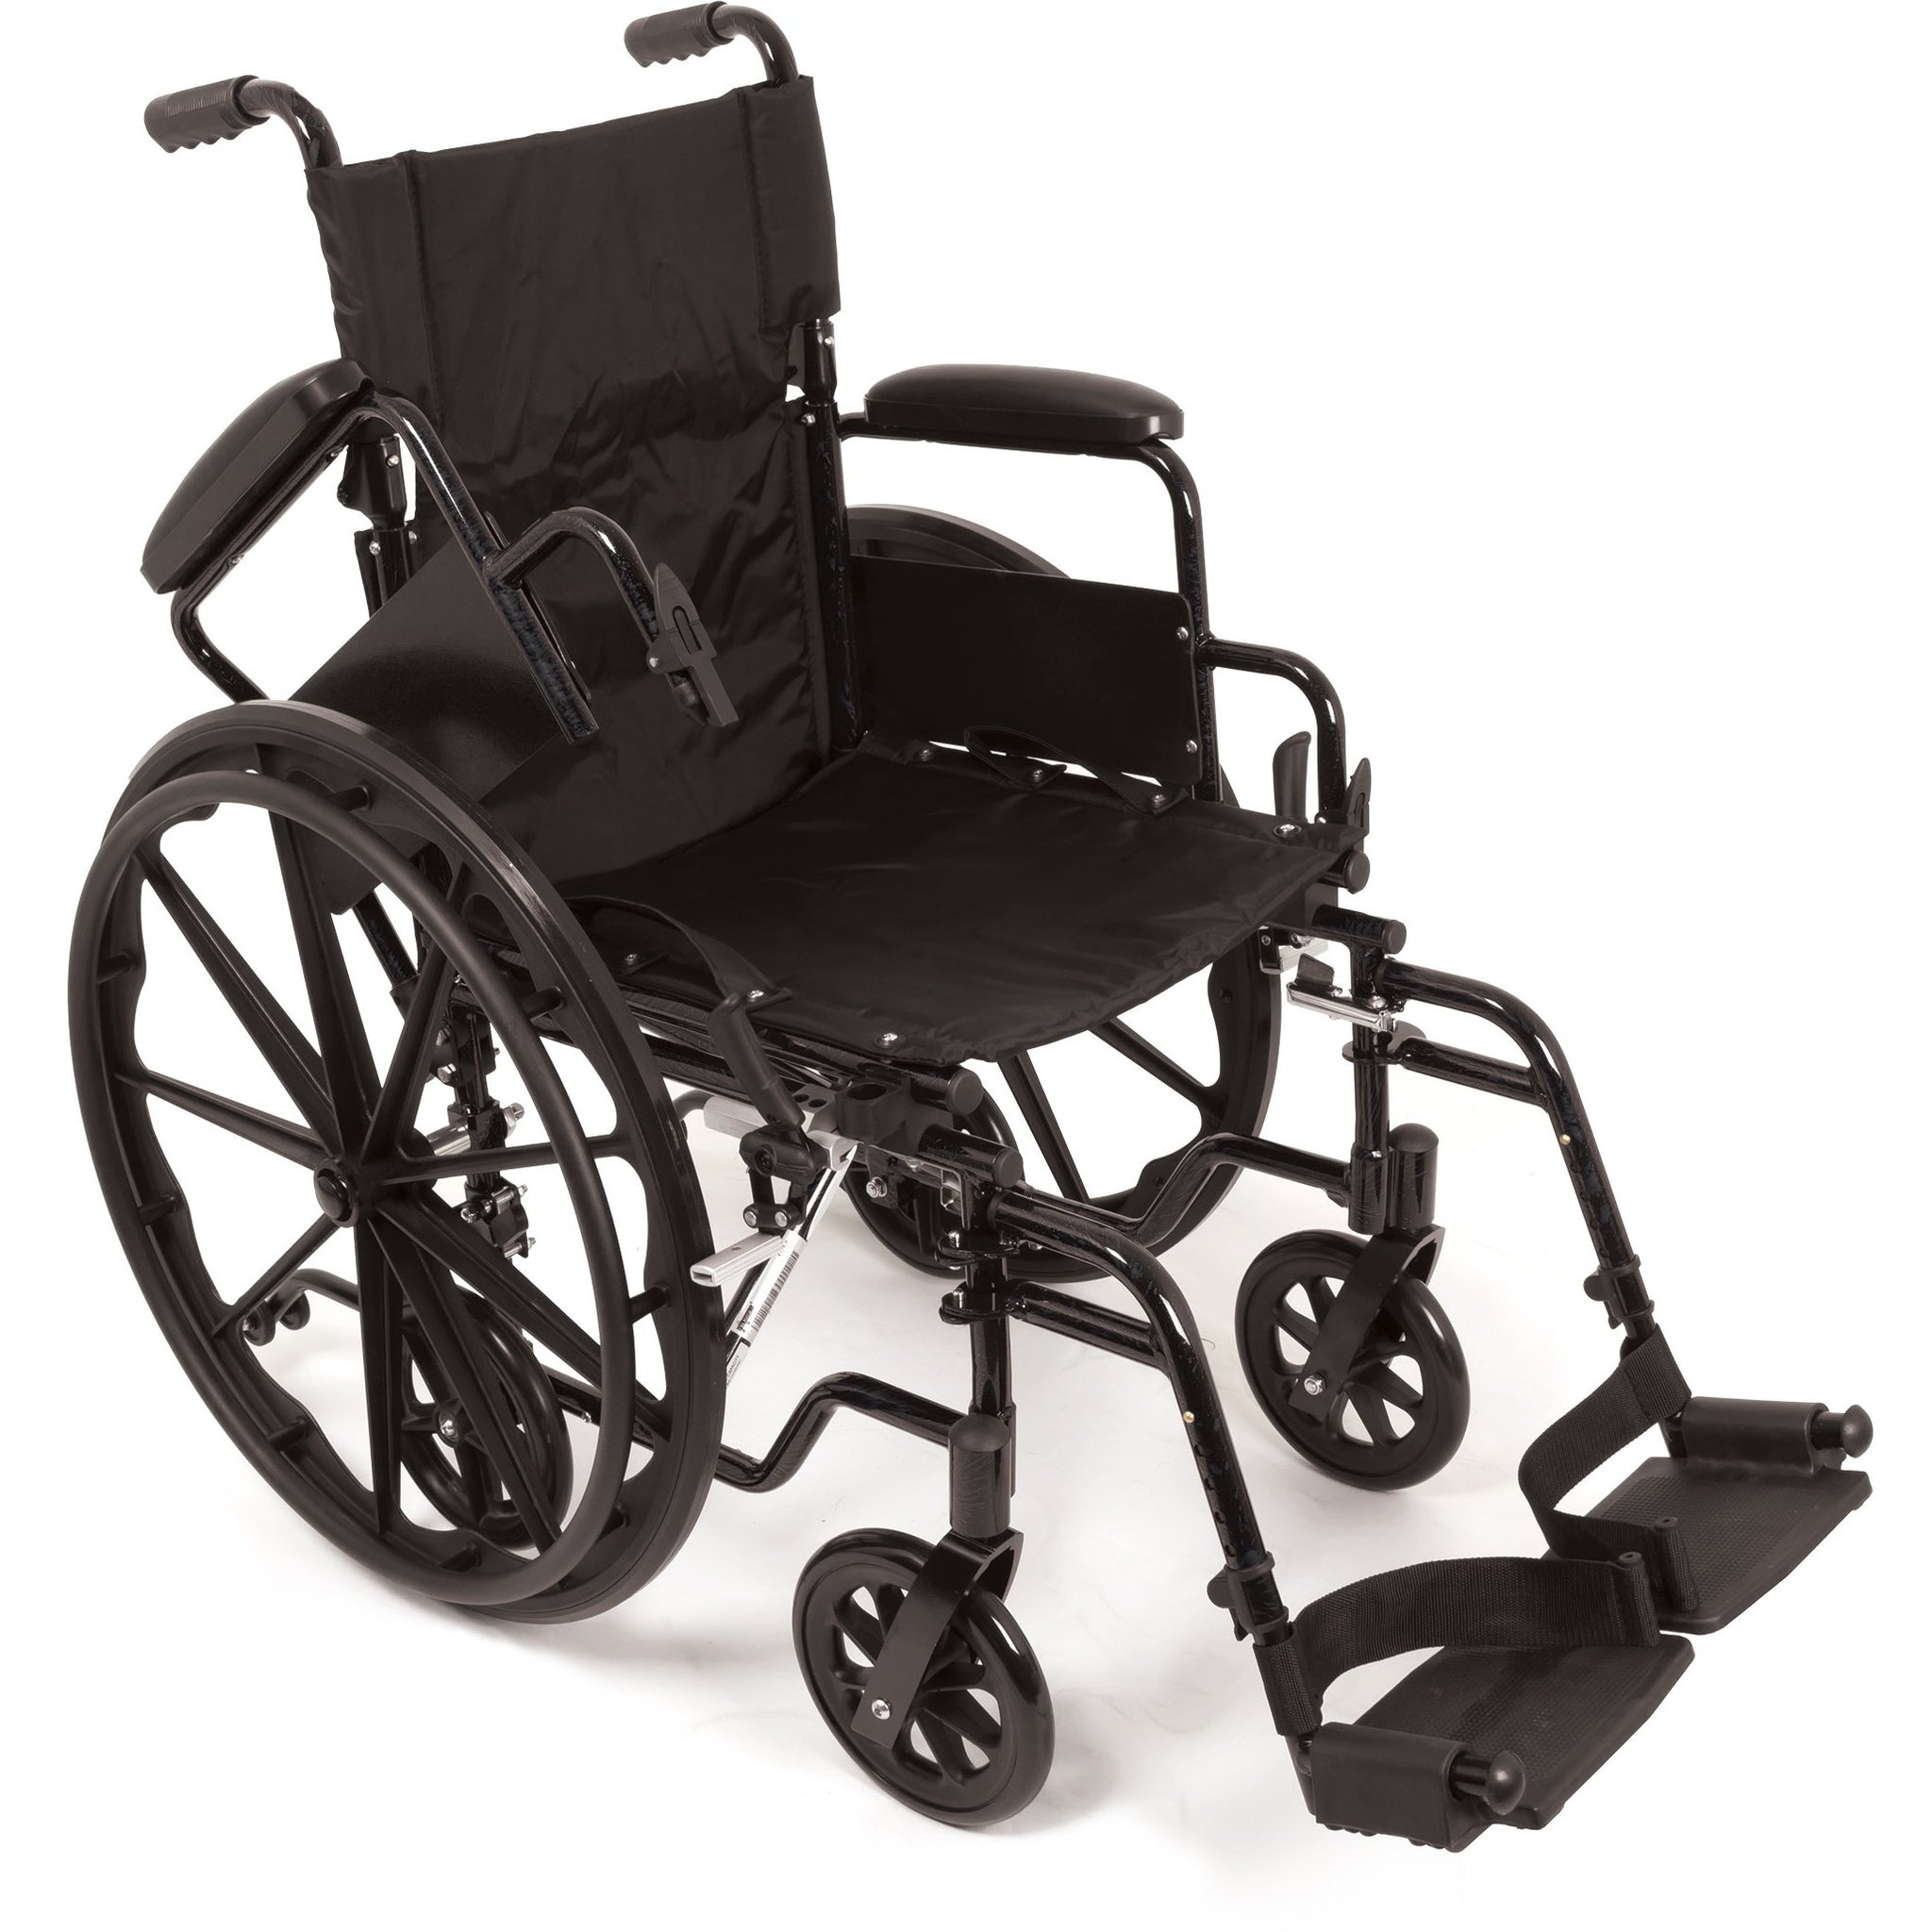 Compass Health: ProBasics K4 Transformer Wheelchair with 16